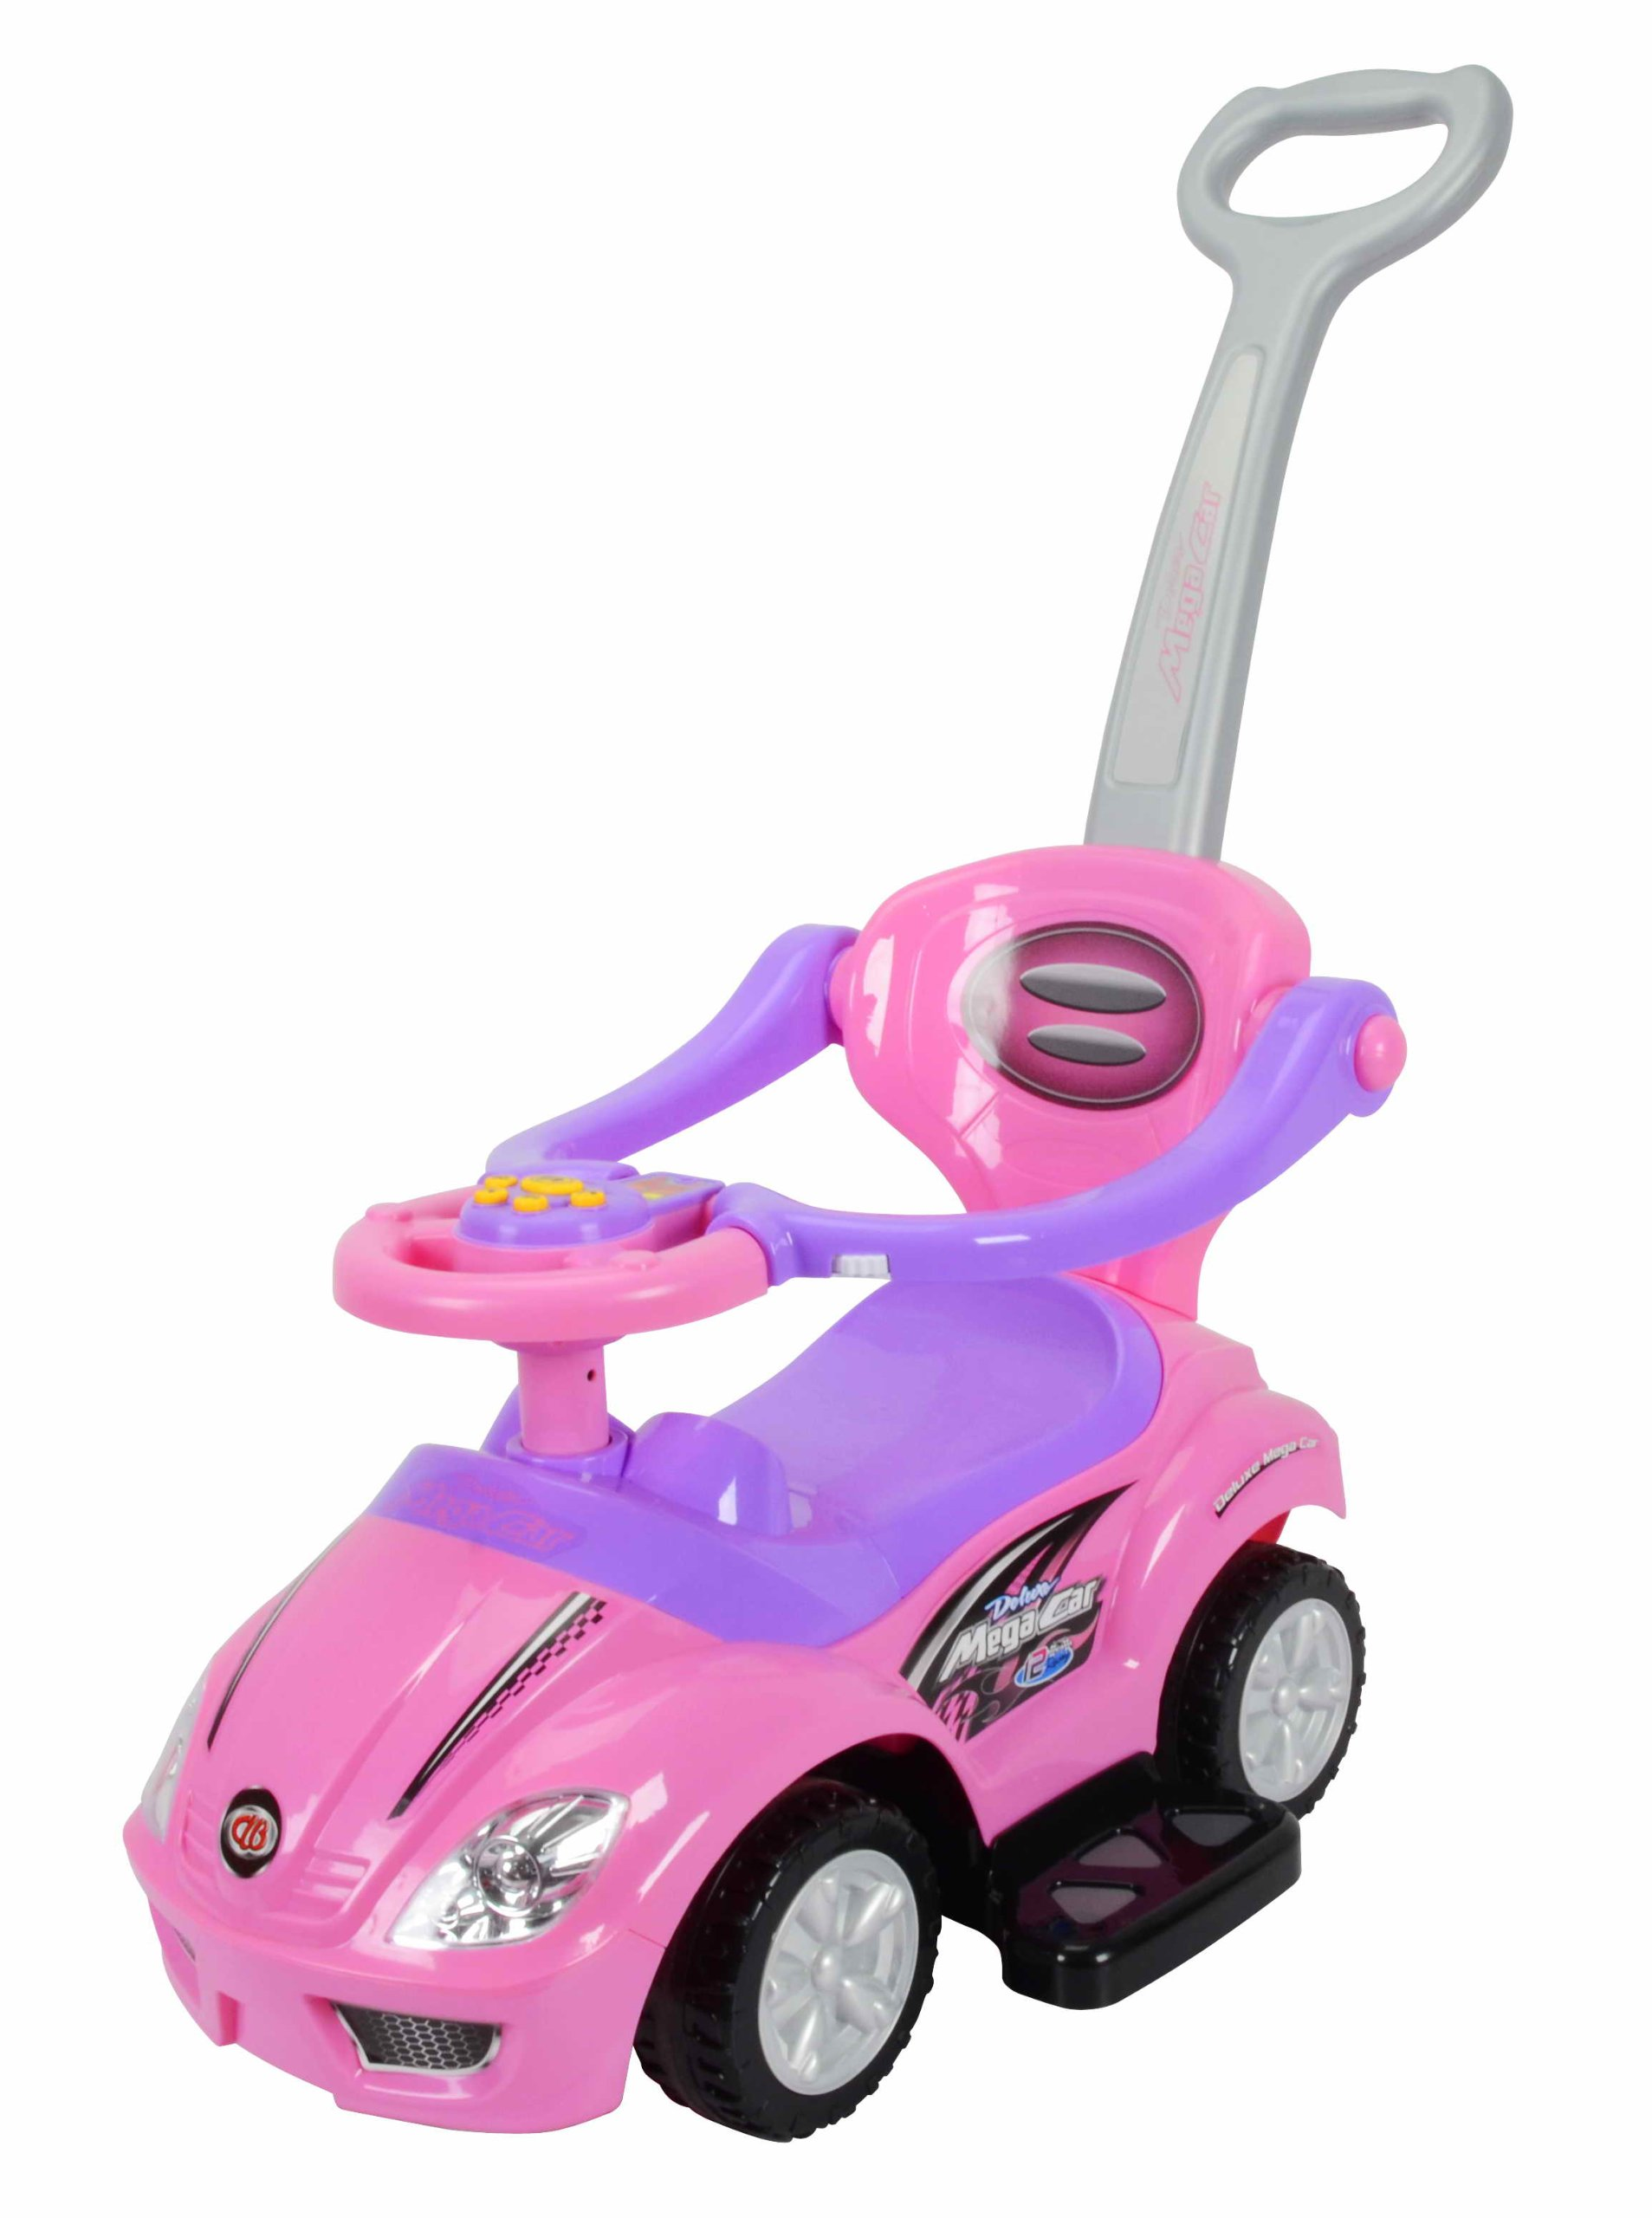 Best Ride on Cars 3 in 1 Push Car, Pink